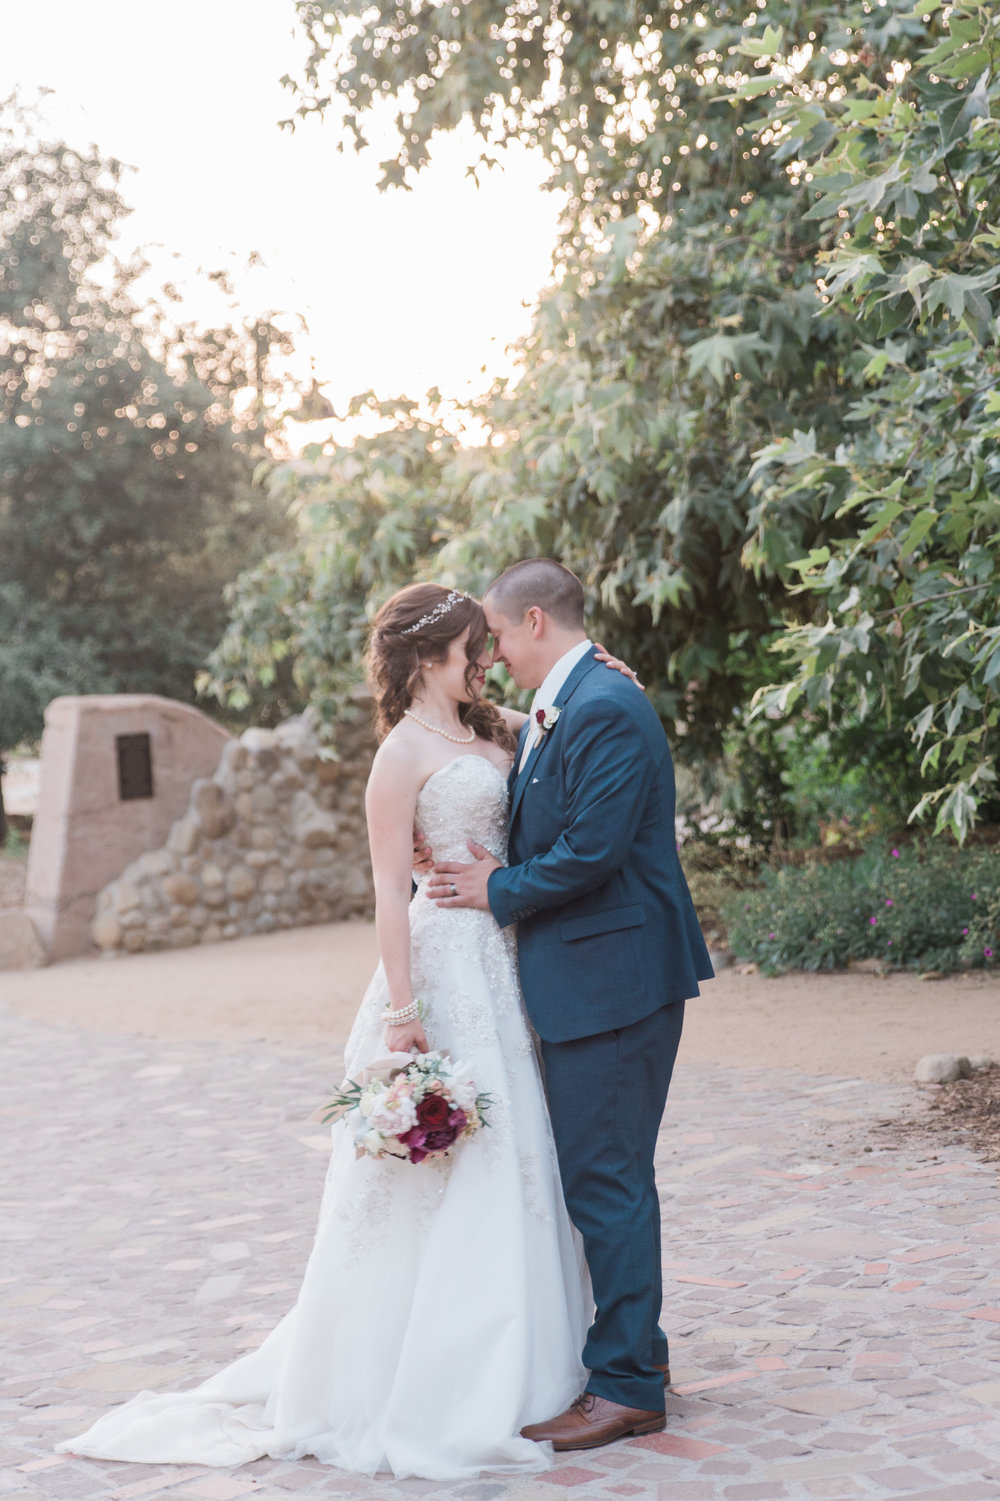 heather anderson photography, film photographer, destination weddings